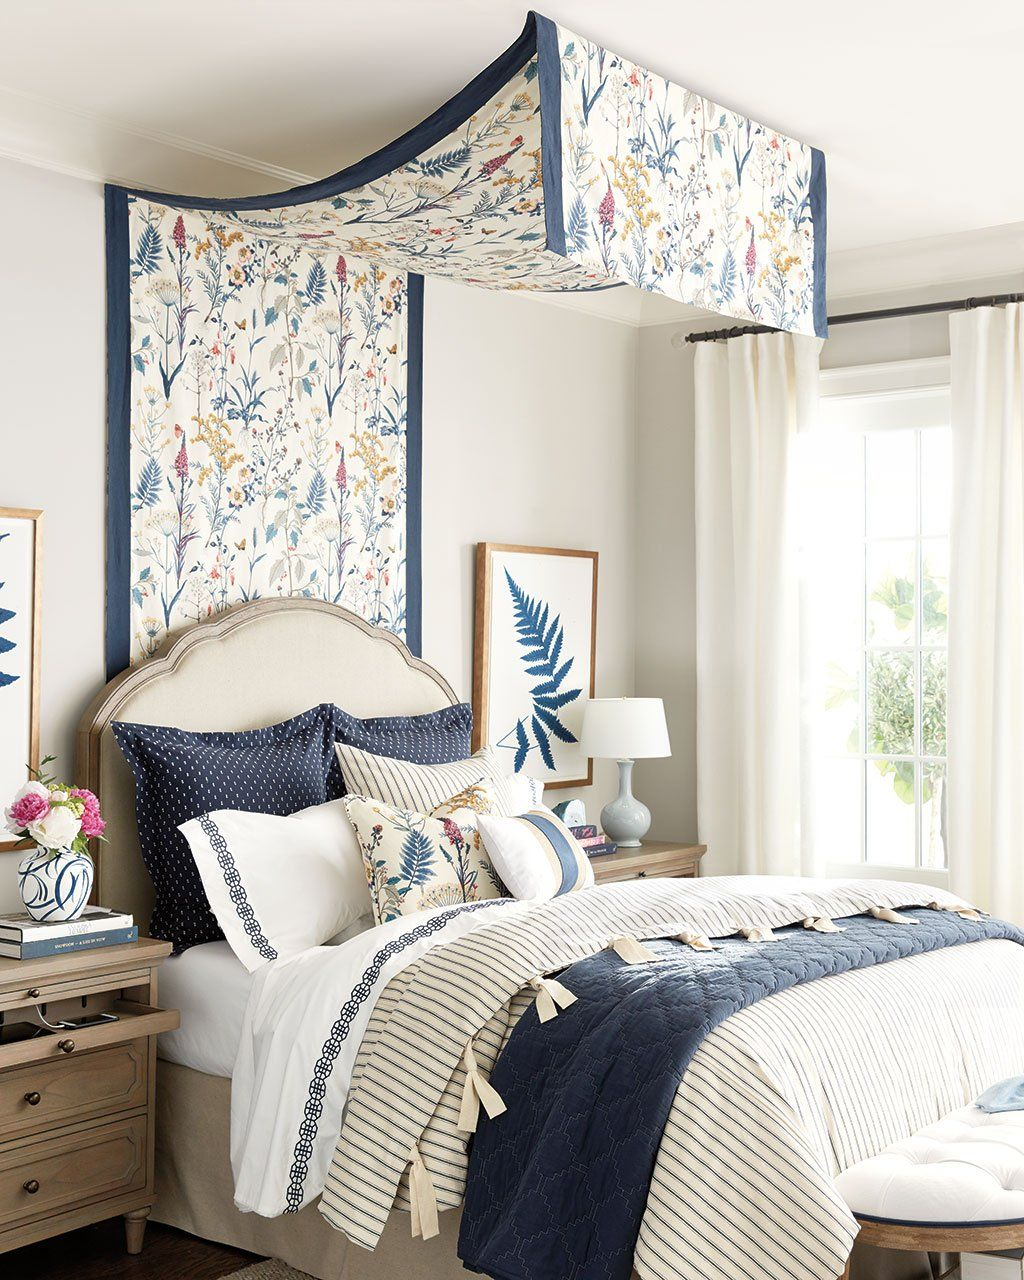 Bedroom Creator Online: How To Create A Canopy For Your Bed